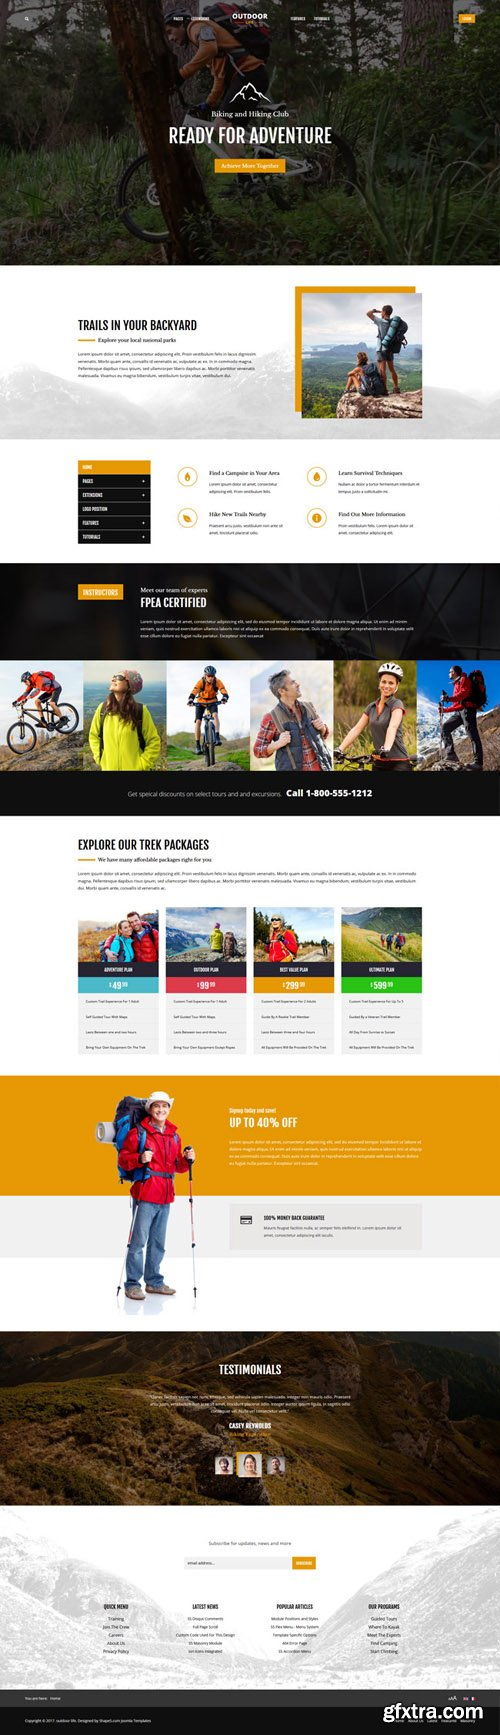 Shape5 - Outdoor Life v1.0.3 - Joomla Template